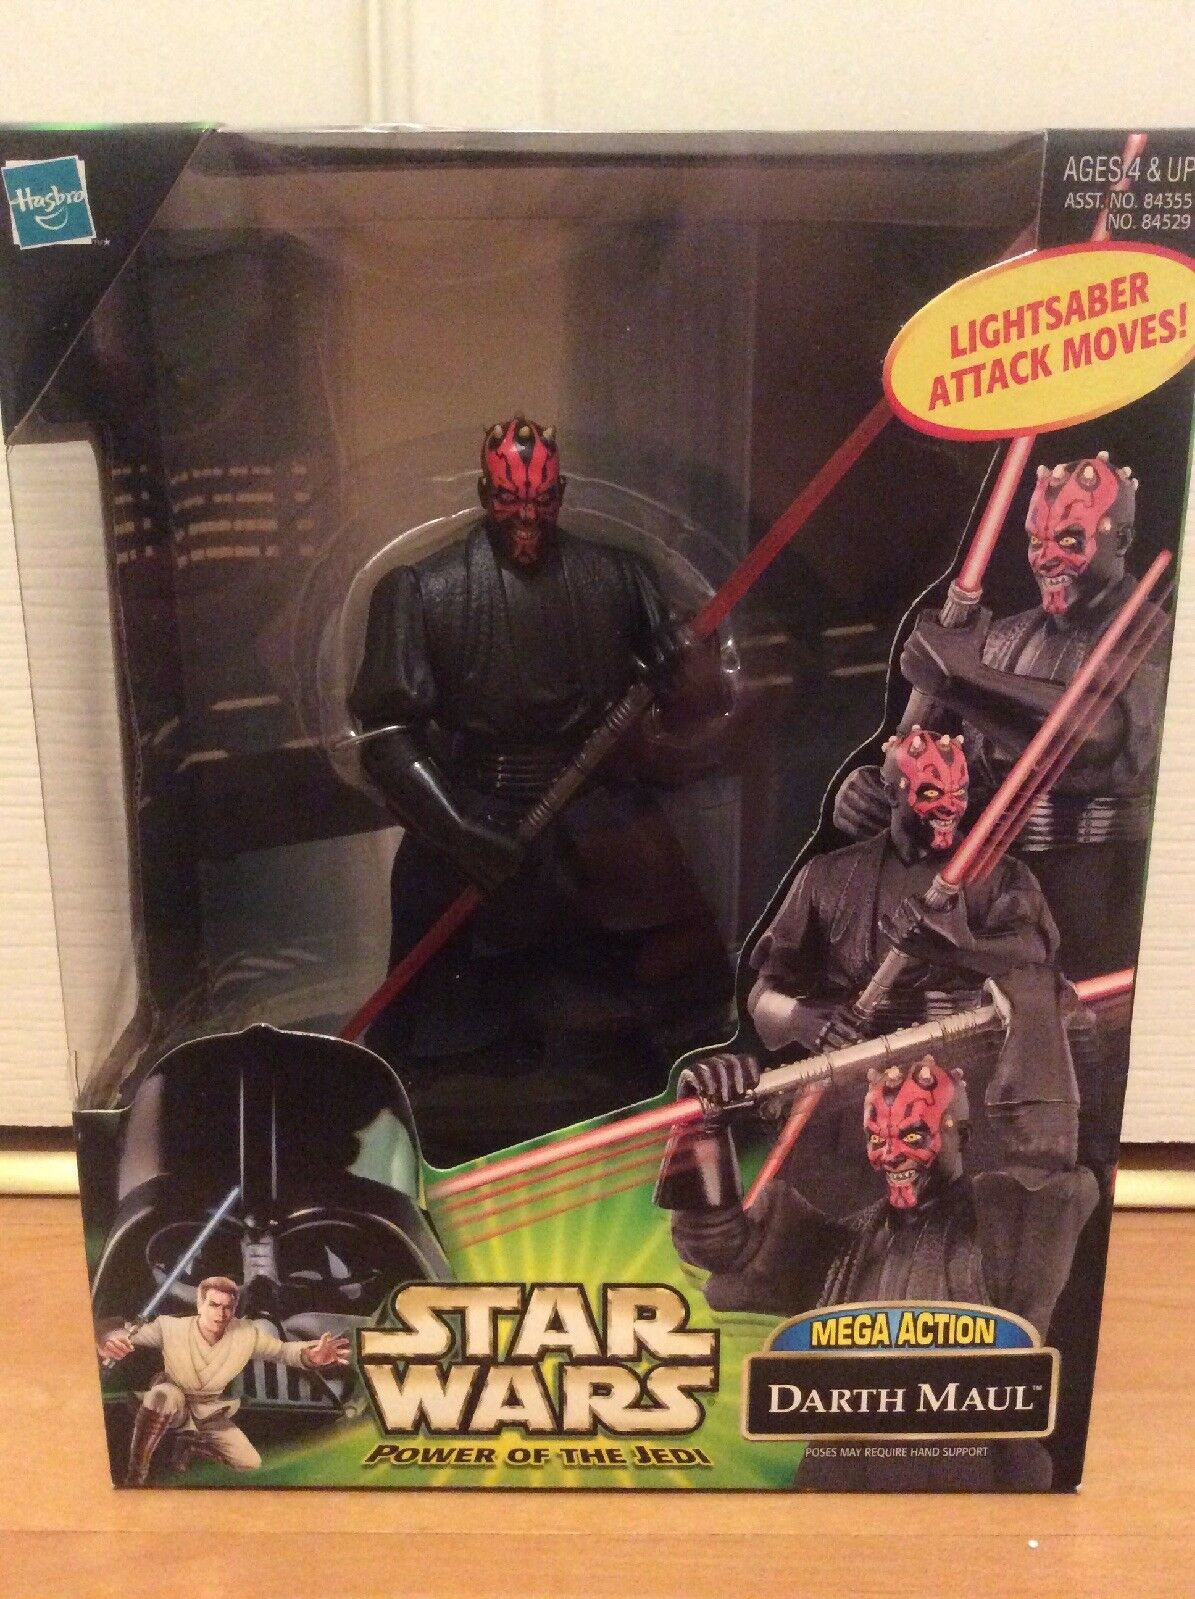 Star Wars Power Of The Jedi Mega Action Darth Maul Sith Action Figure MISB Rare